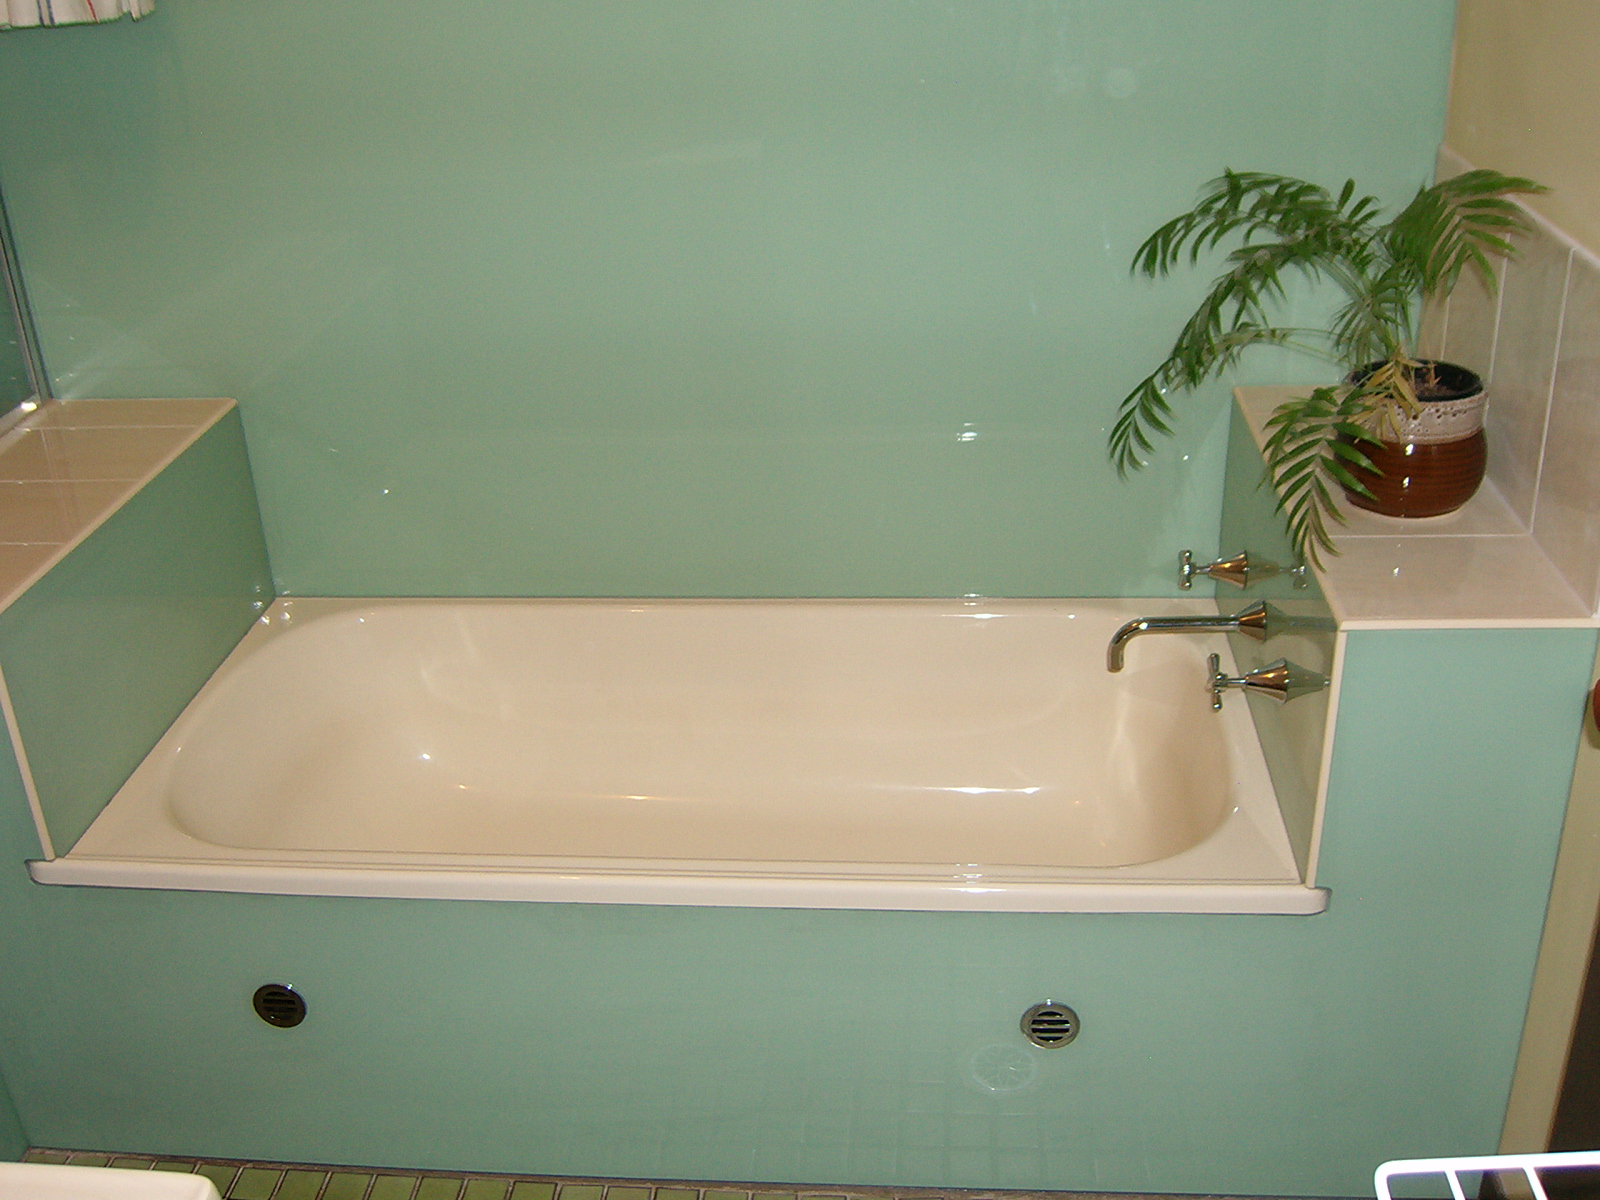 Bathroom splashback ideas bathroom splashback ideas for Sink splashback ideas